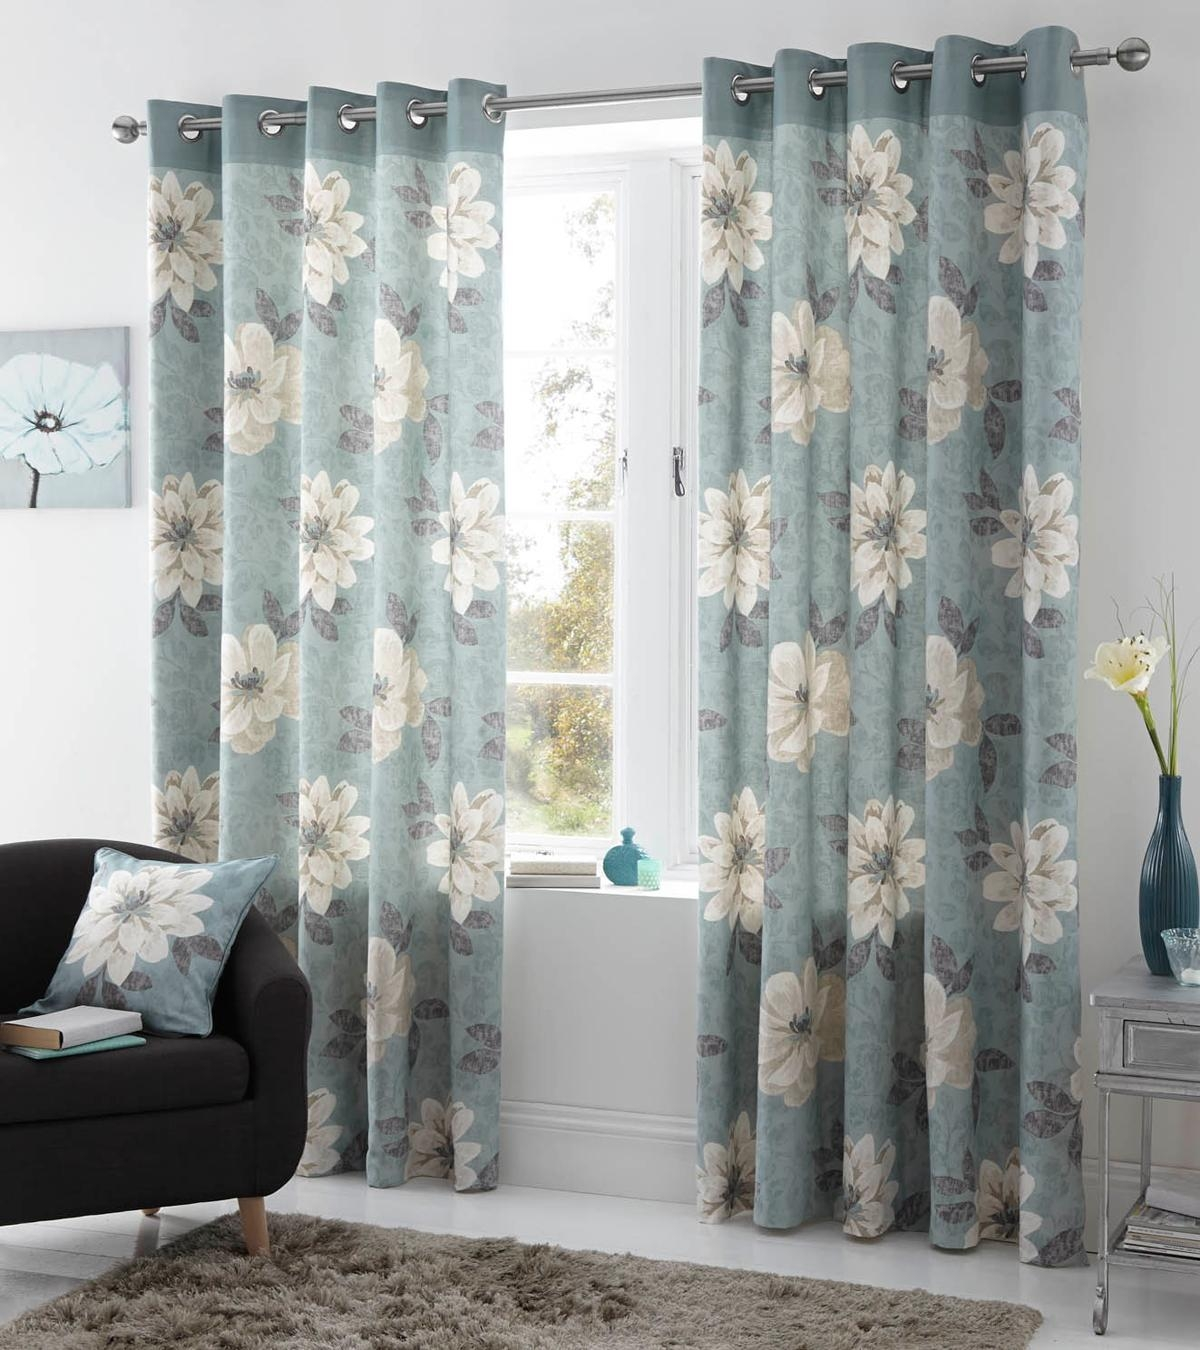 Annabella Eyelet Curtains In Duck Egg Free Uk Delivery Terrys Throughout Duck Egg Blue Blackout Curtains (Image 1 of 15)